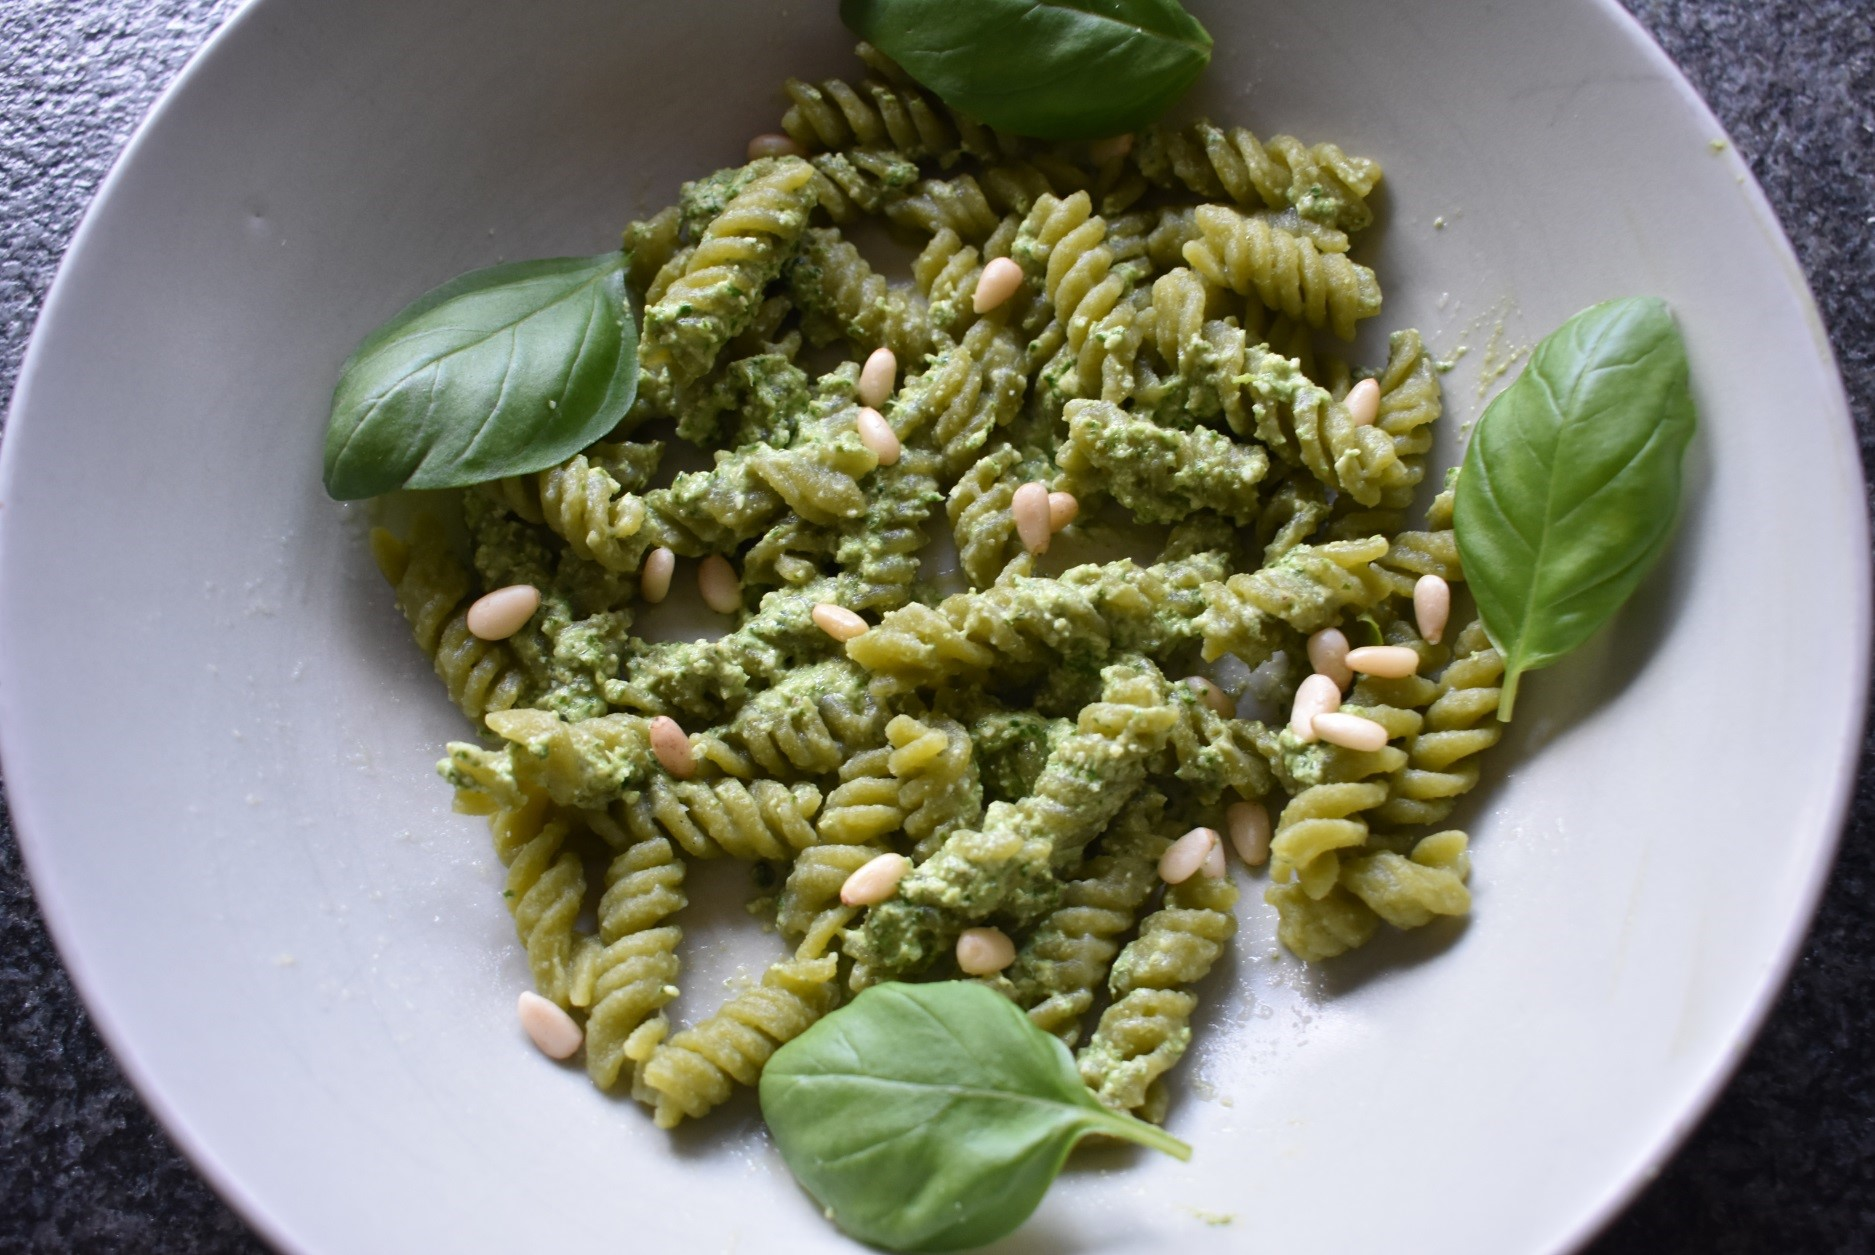 Erwtenpasta met pesto (lunch)